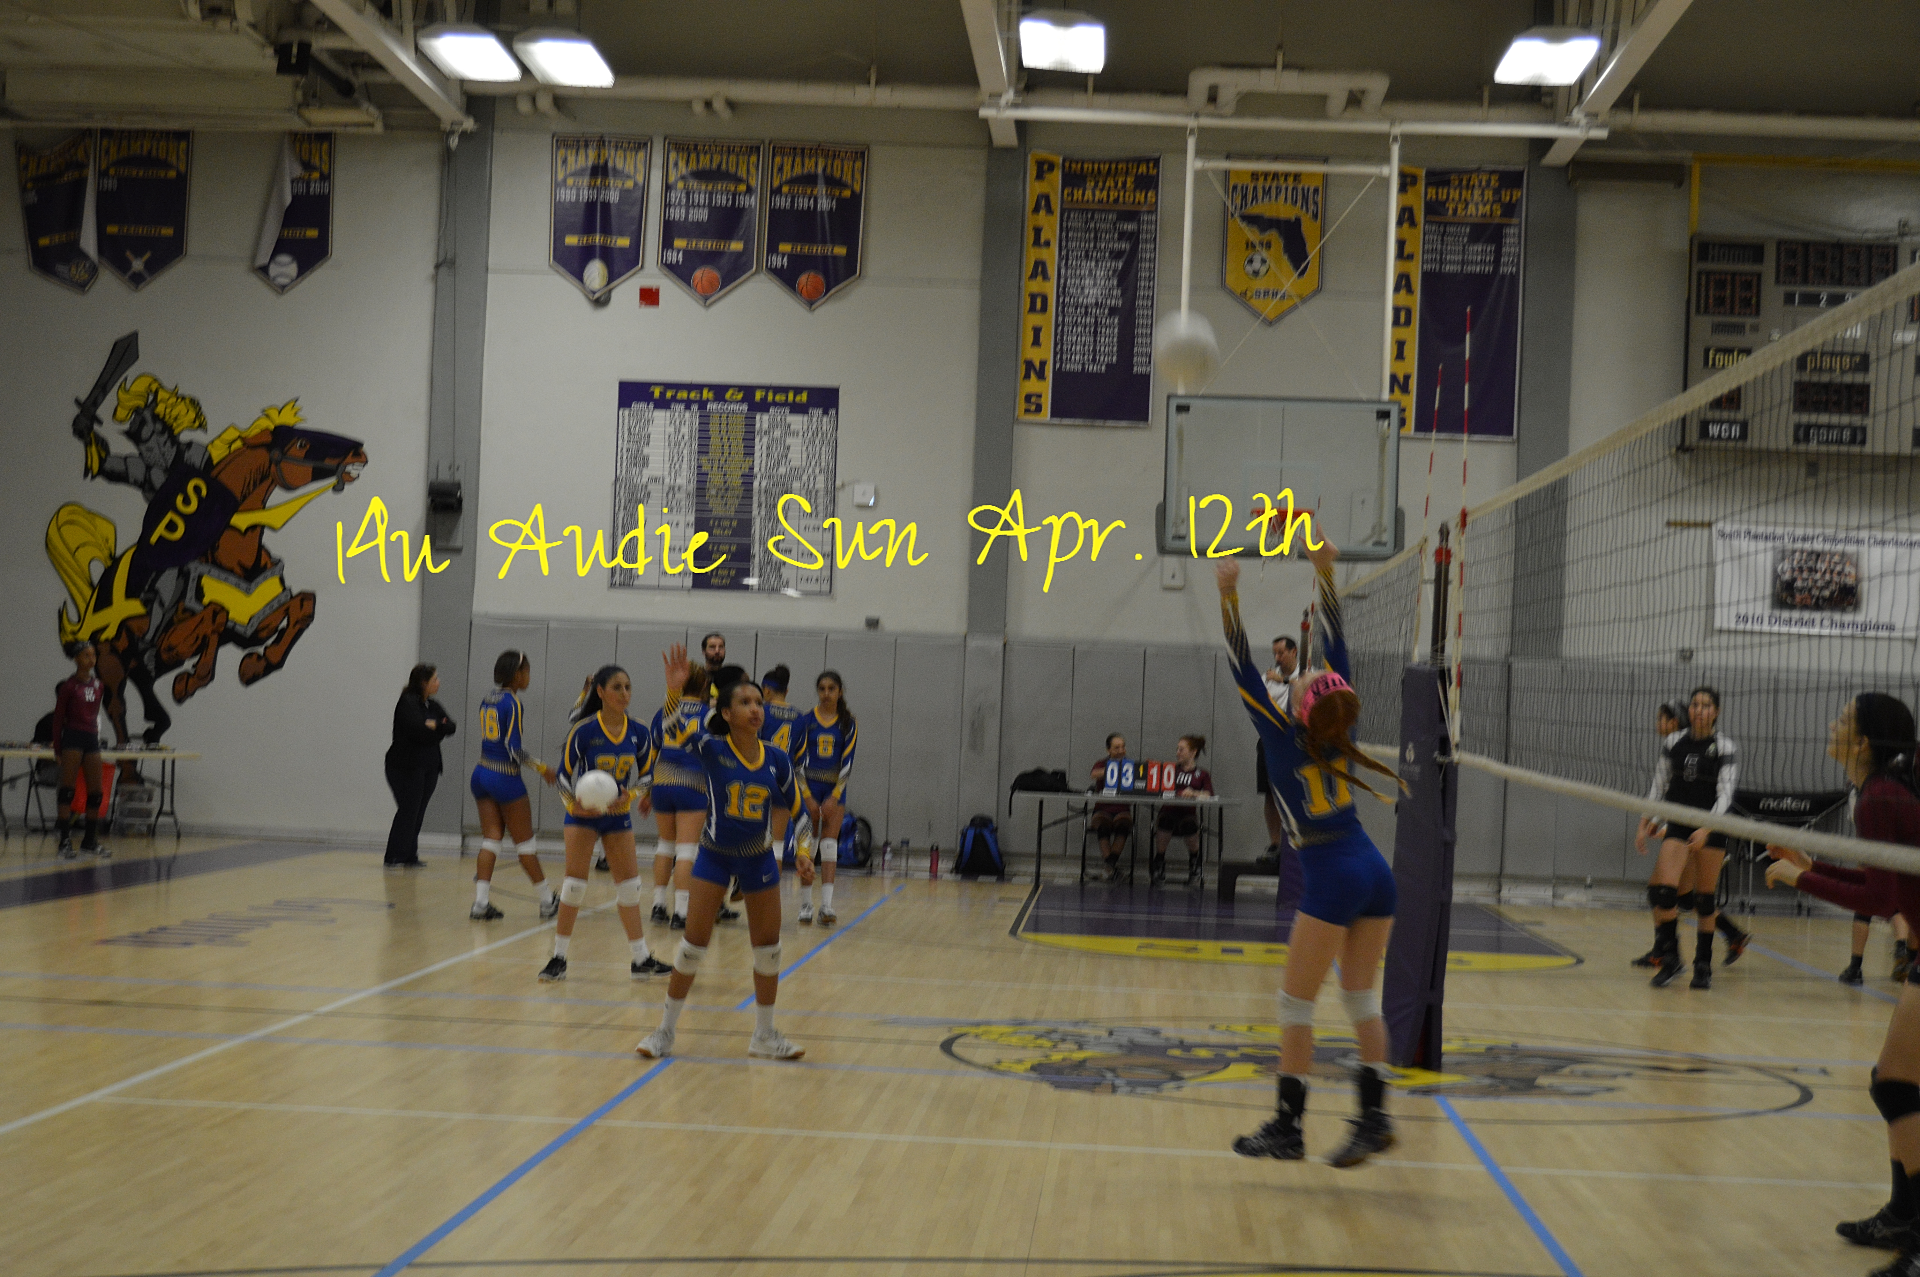 Soflo Volleyball 14u Audie Sun Apr 14th